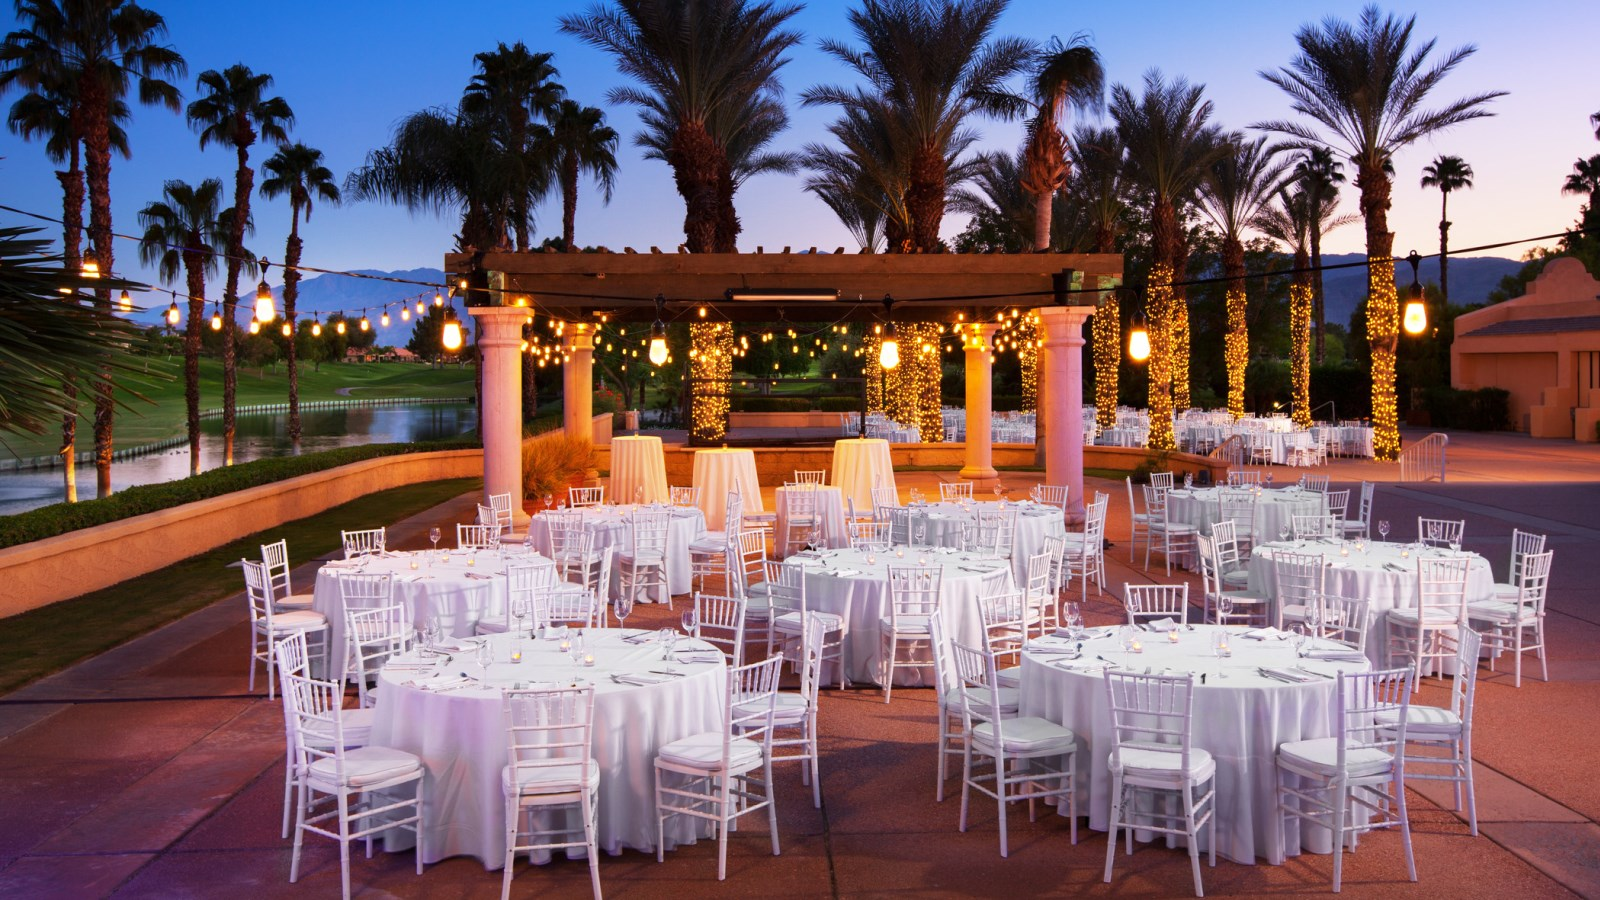 Palm springs wedding venues the westin mission hills golf resort the westin mission hills golf resort spa weddings junglespirit Image collections